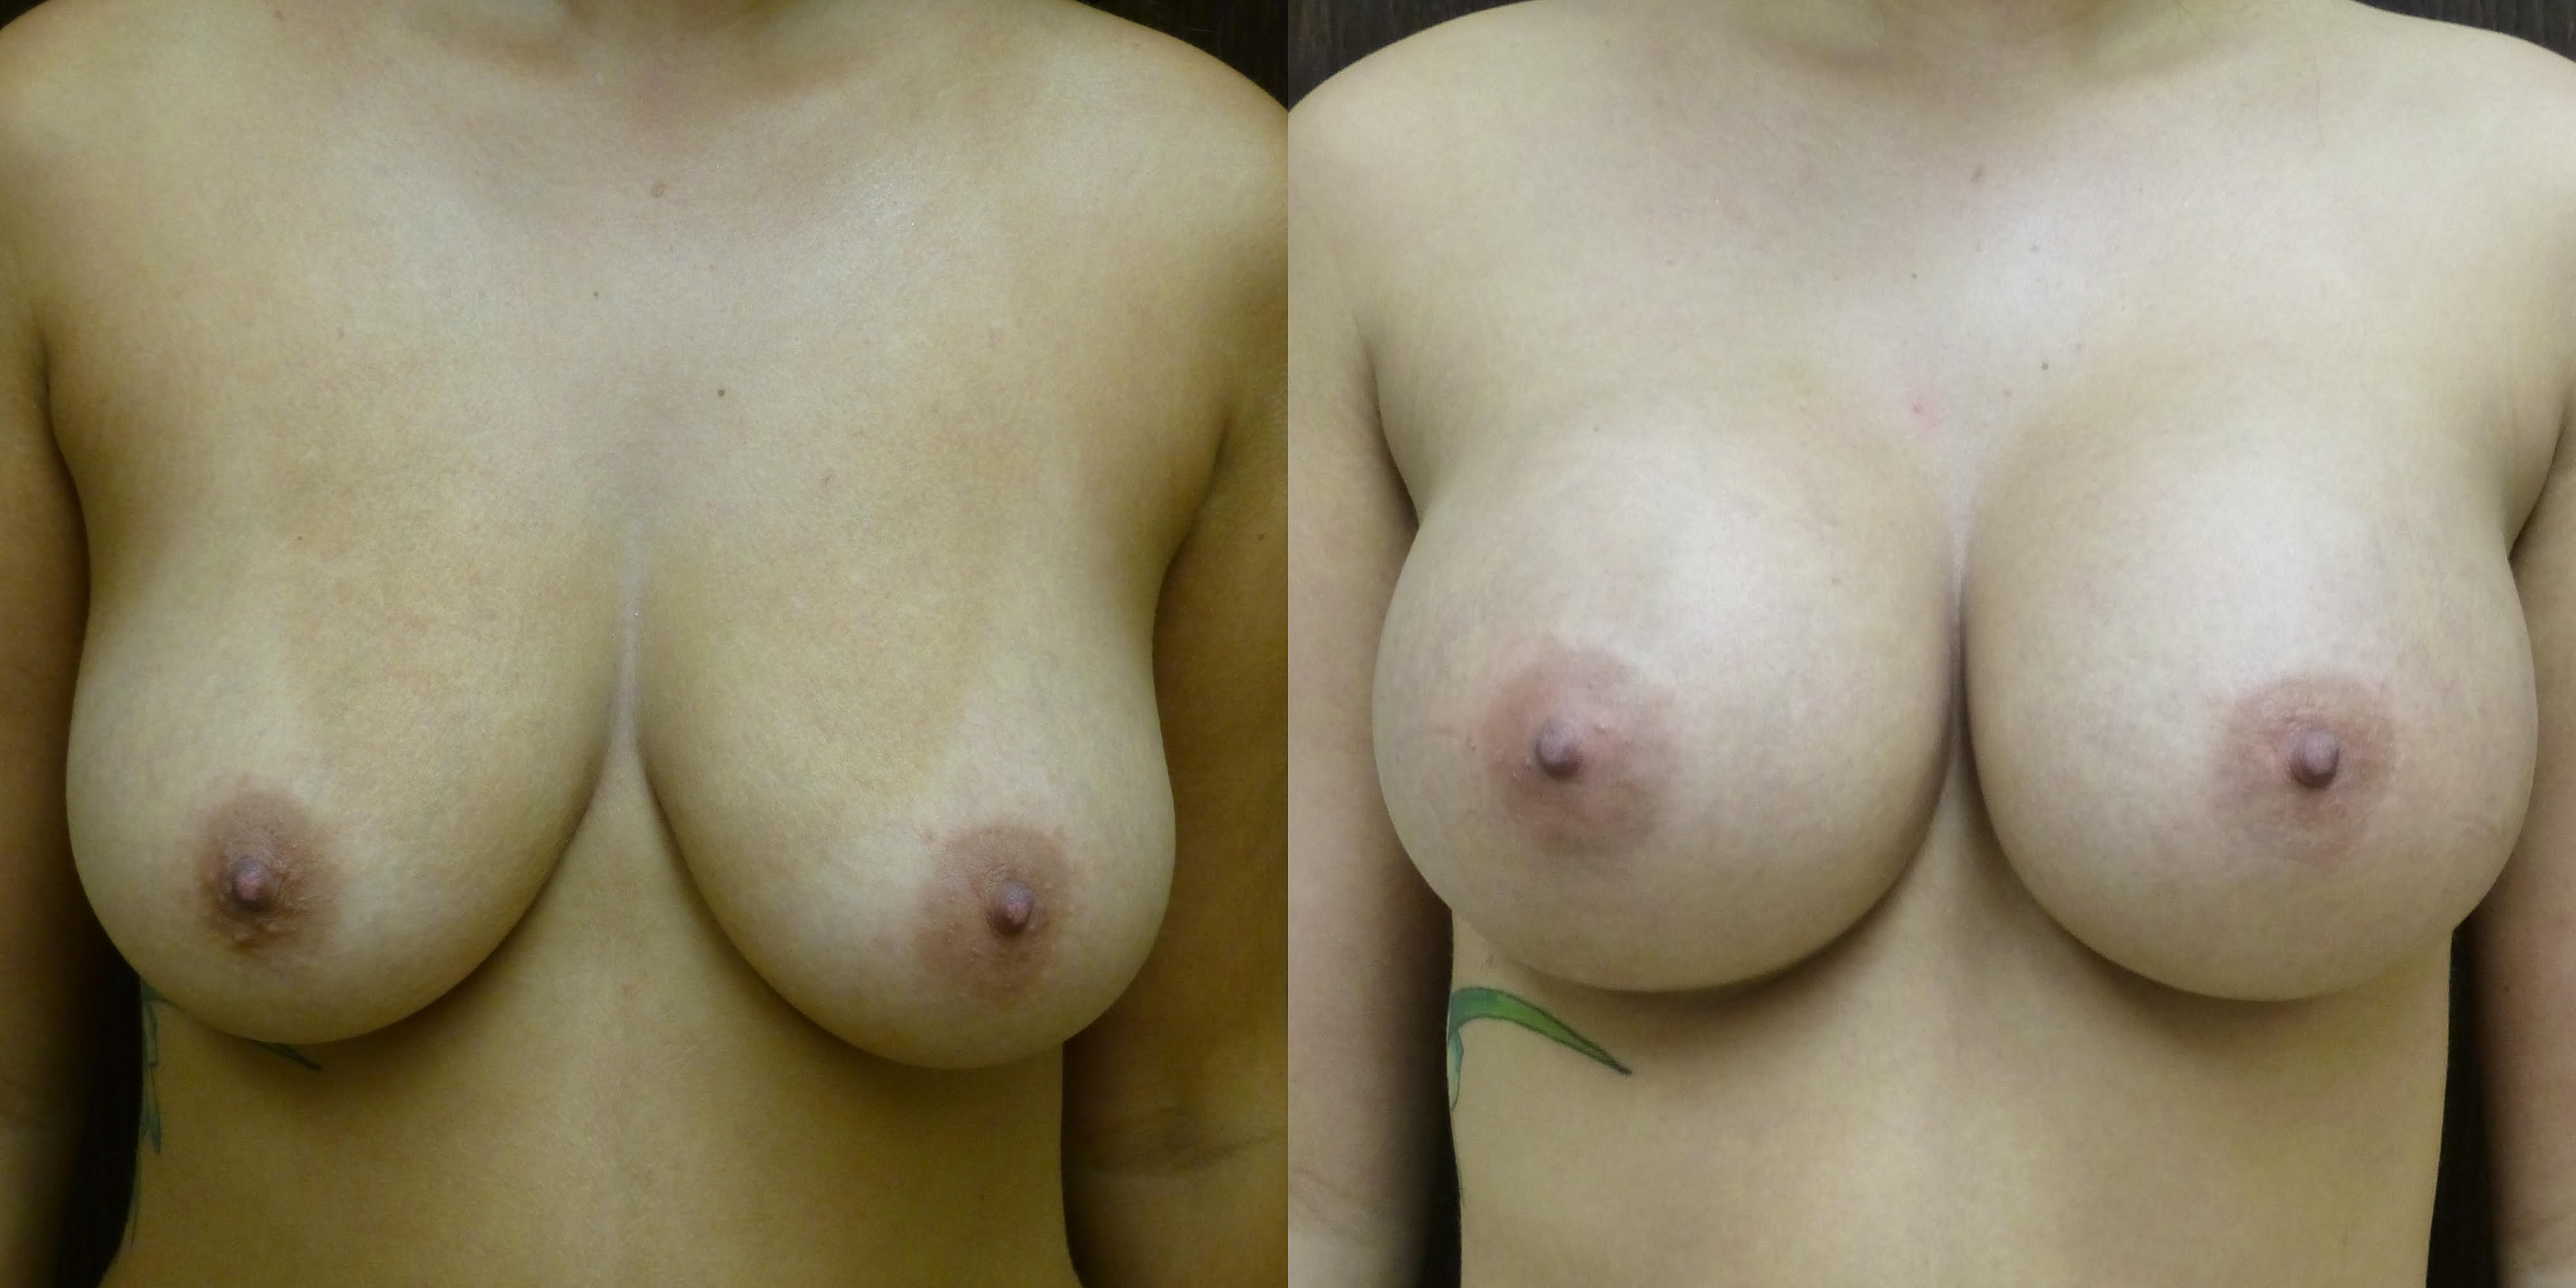 Breast Augmentation - Before and after - Many patients have Fear of Plastic Surgery includes Breast Augmentation Surgery